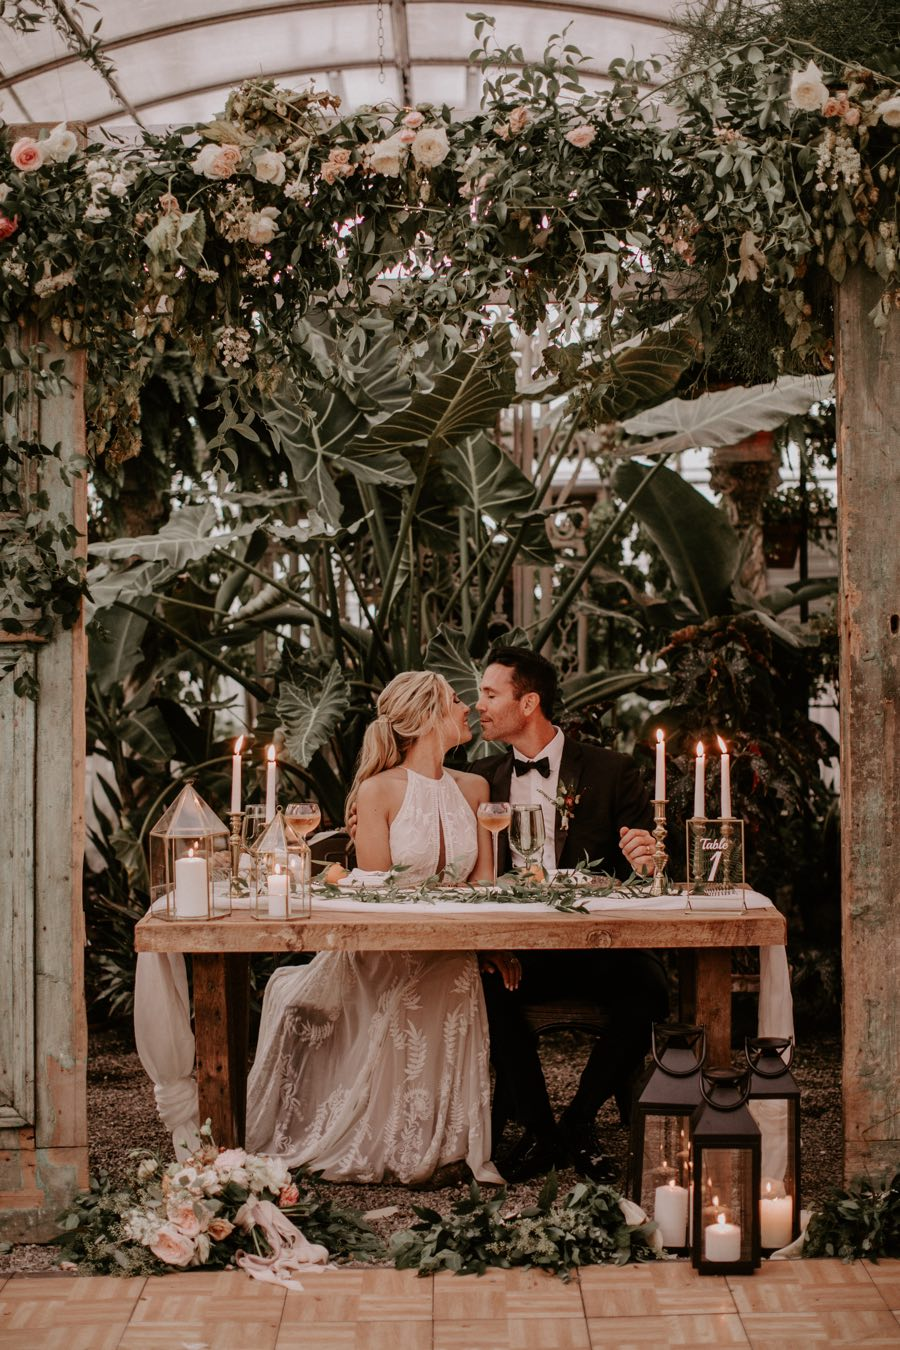 The Botanical Details In This Hortulus Farm Wedding Are Stunning